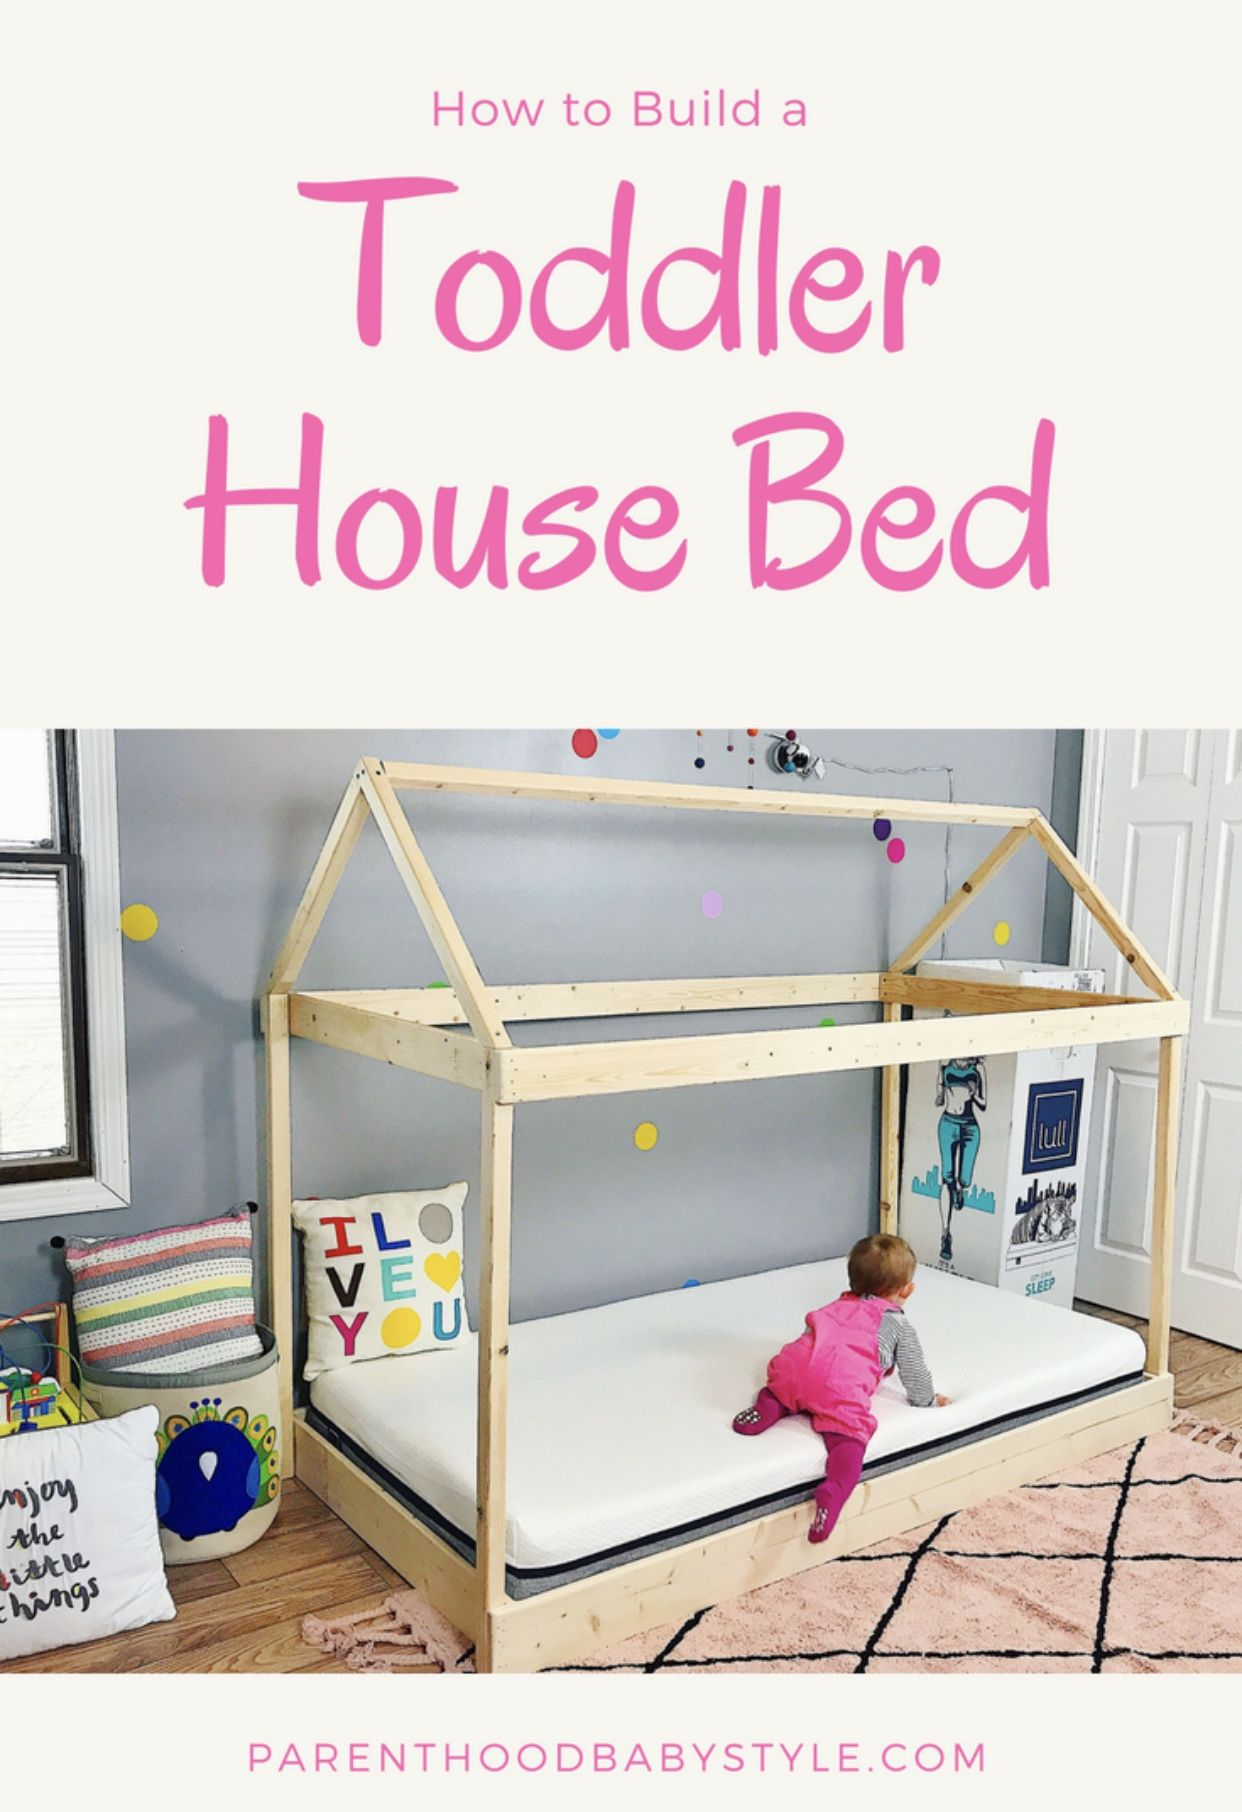 Toddler House Bed - Toddler Room - Diy House Bed